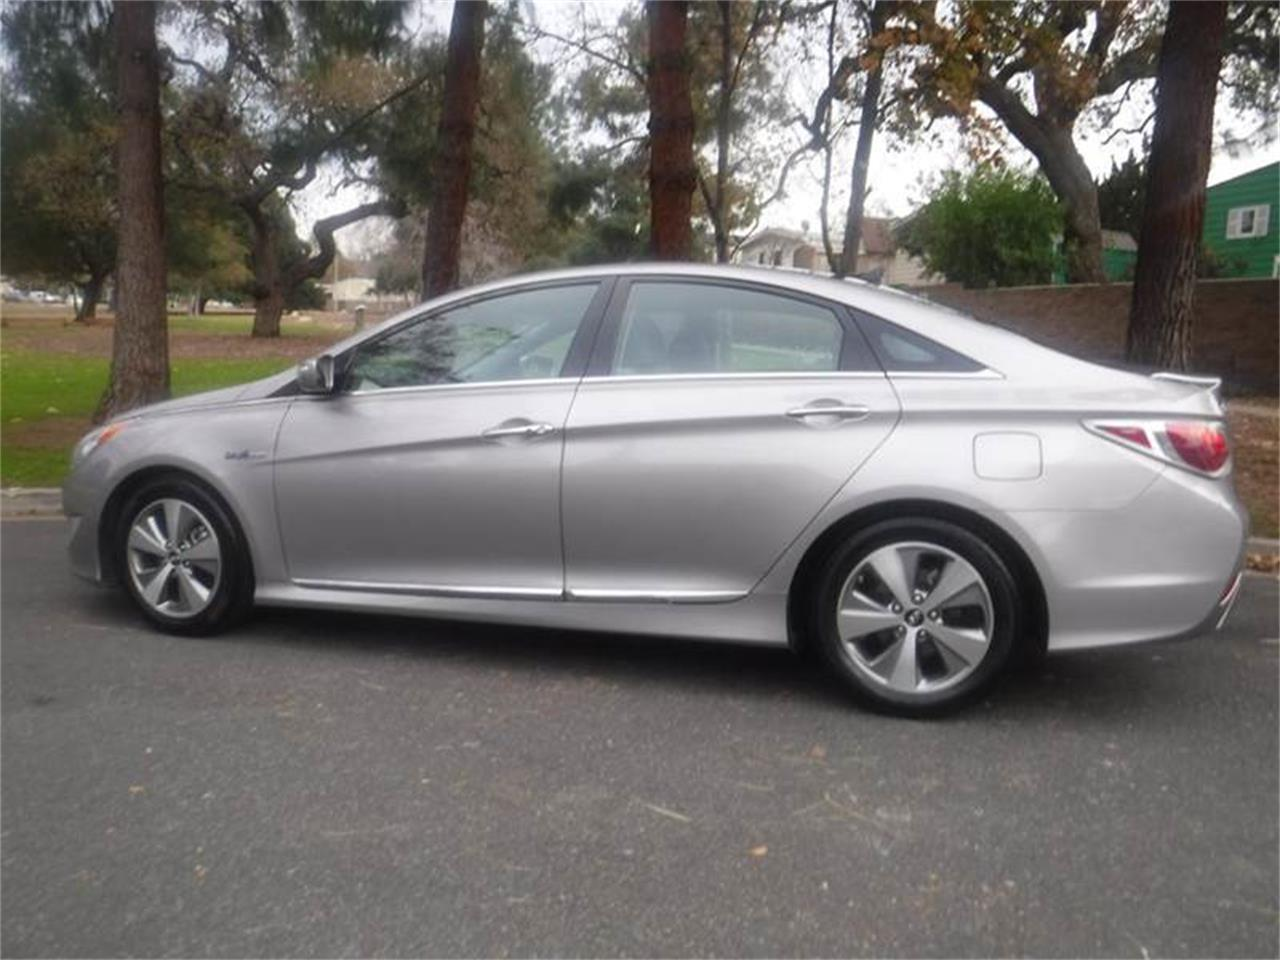 Large Picture of '11 Hyundai Sonata located in Thousand Oaks California - MOBC